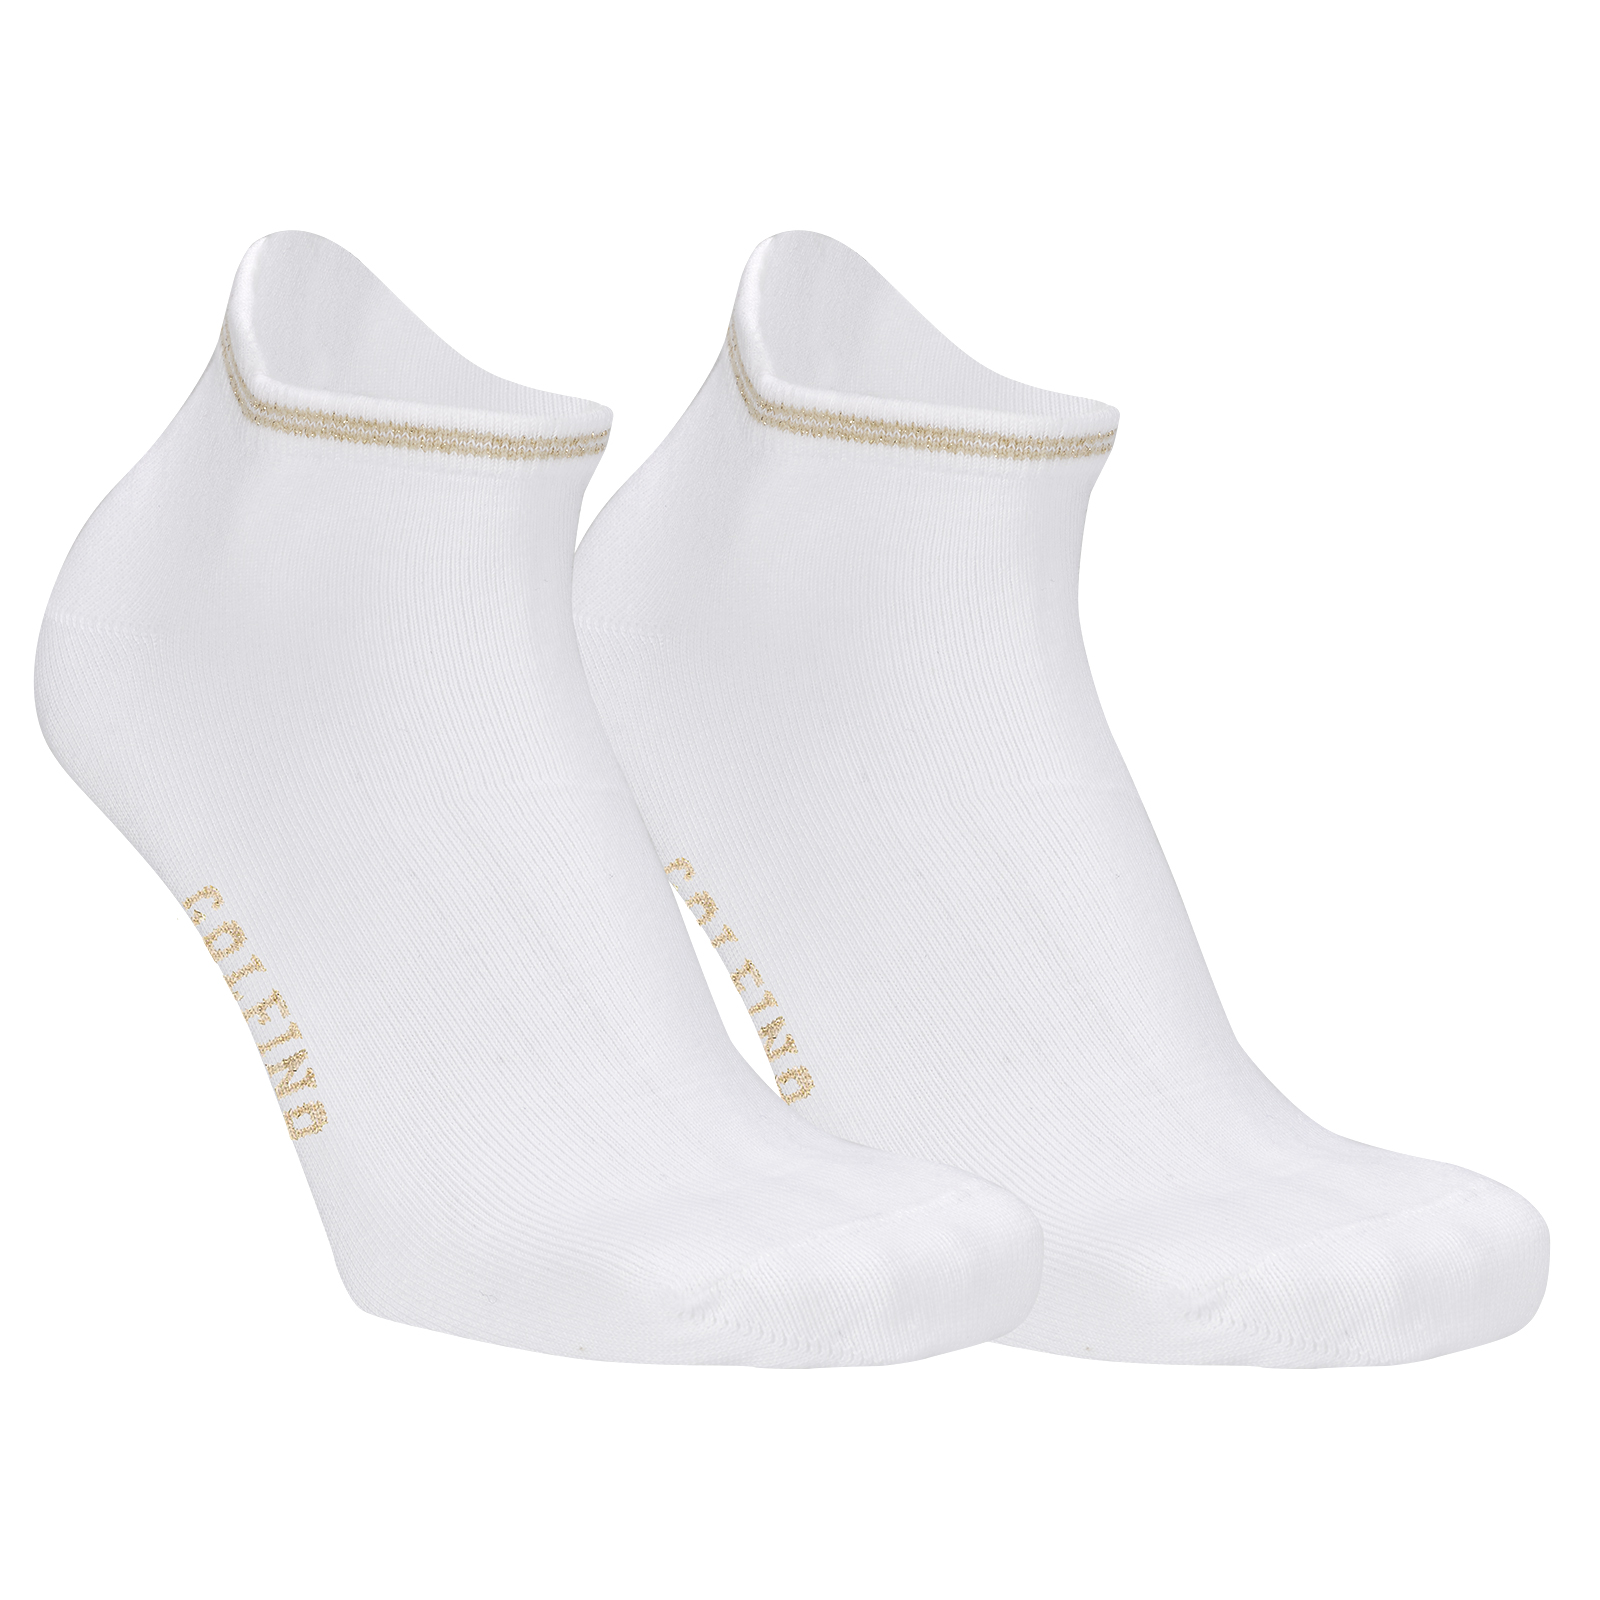 Damen Cotton-Blend Funktions-Golfsocken mit goldfarbenen Metalldetails